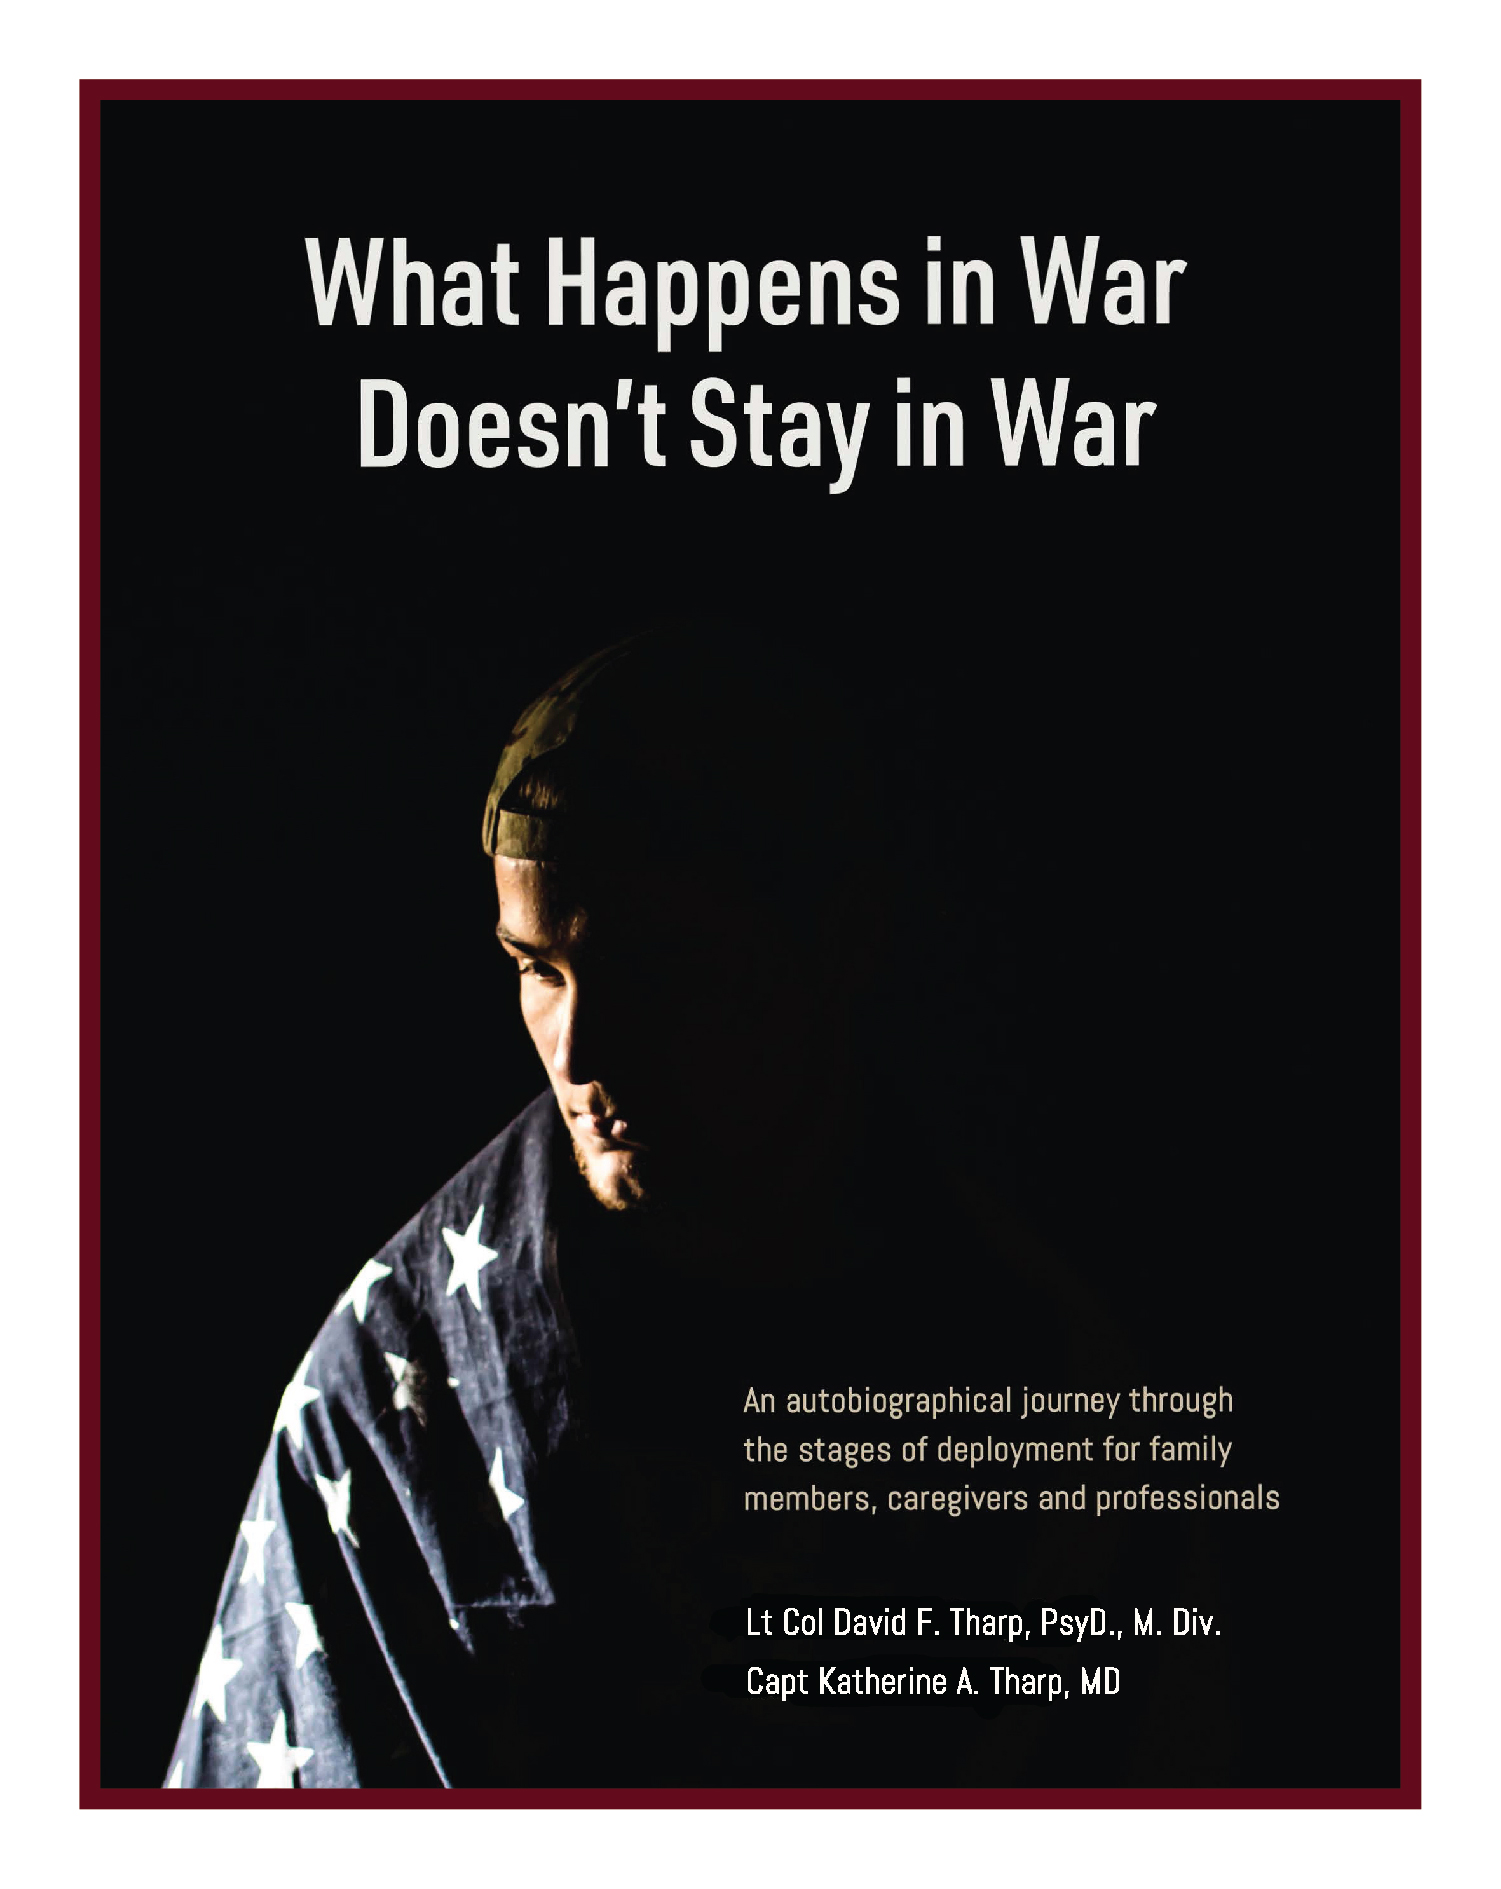 What Happens in War Doesn't Stay in War - An autobiographical journey through the stages of deployment for family members, caregivers and professionals